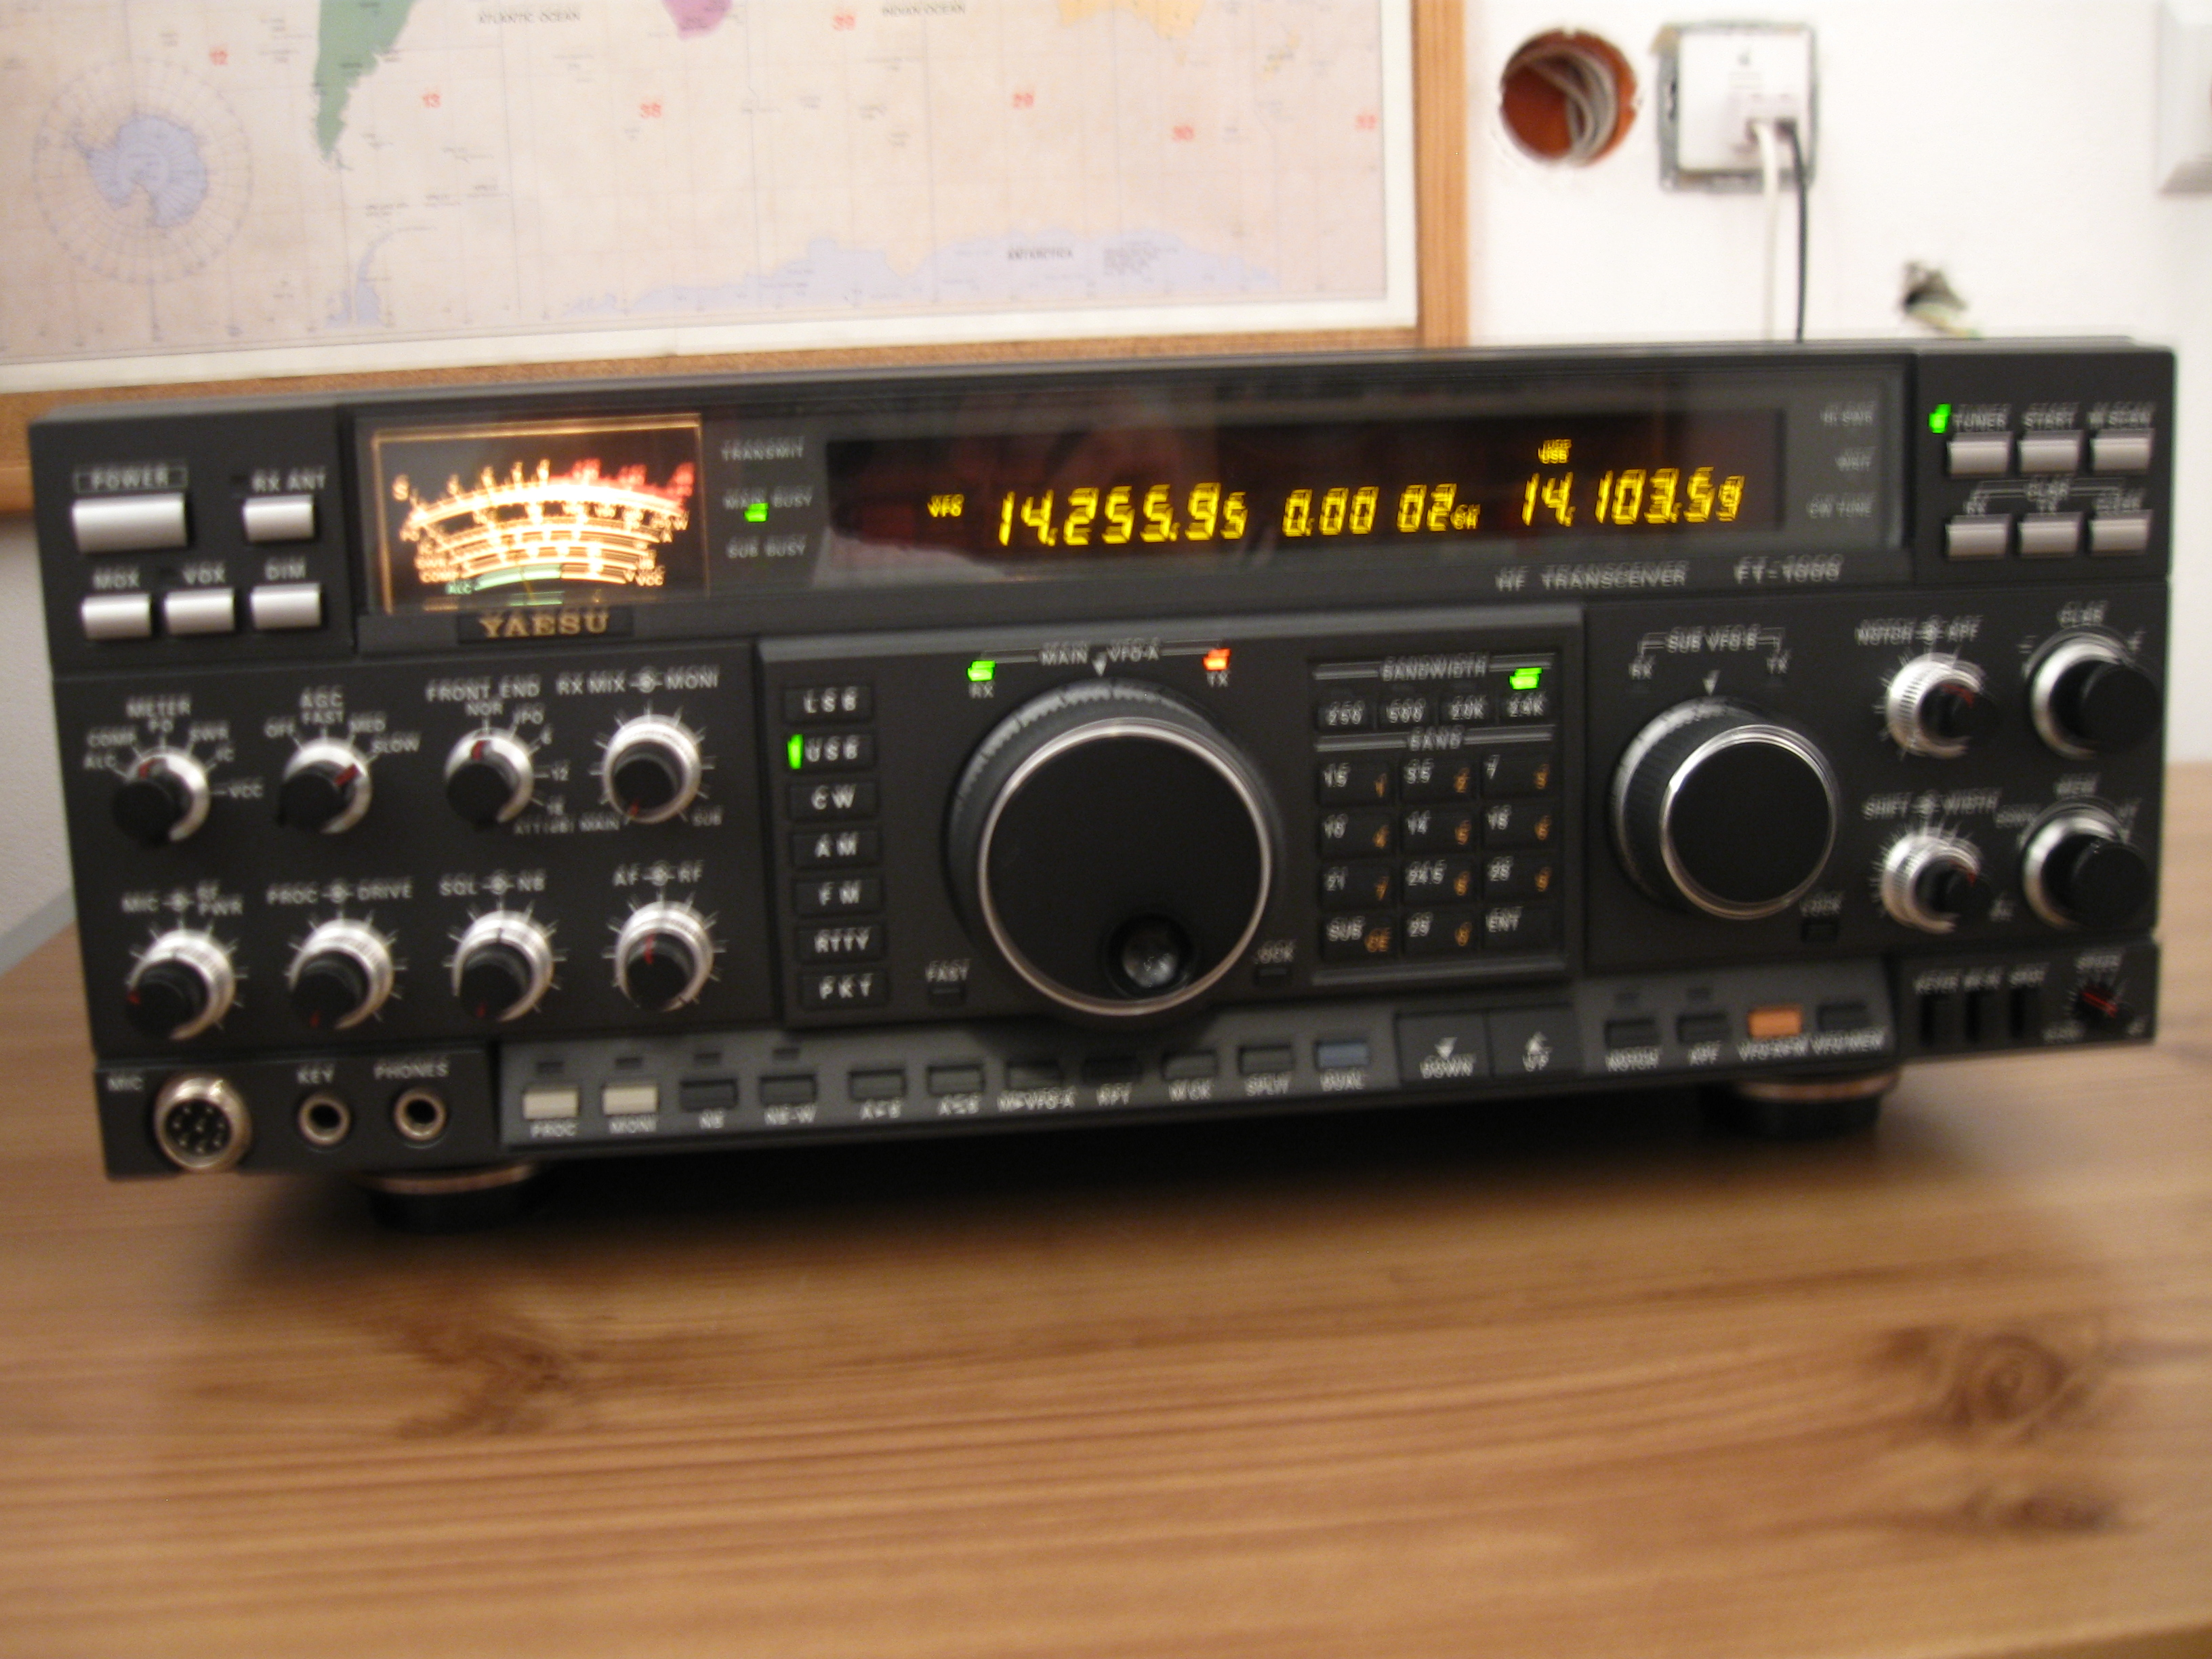 Yaesu FT-1000D has a serial number 9N030071 What is the date of manufacture